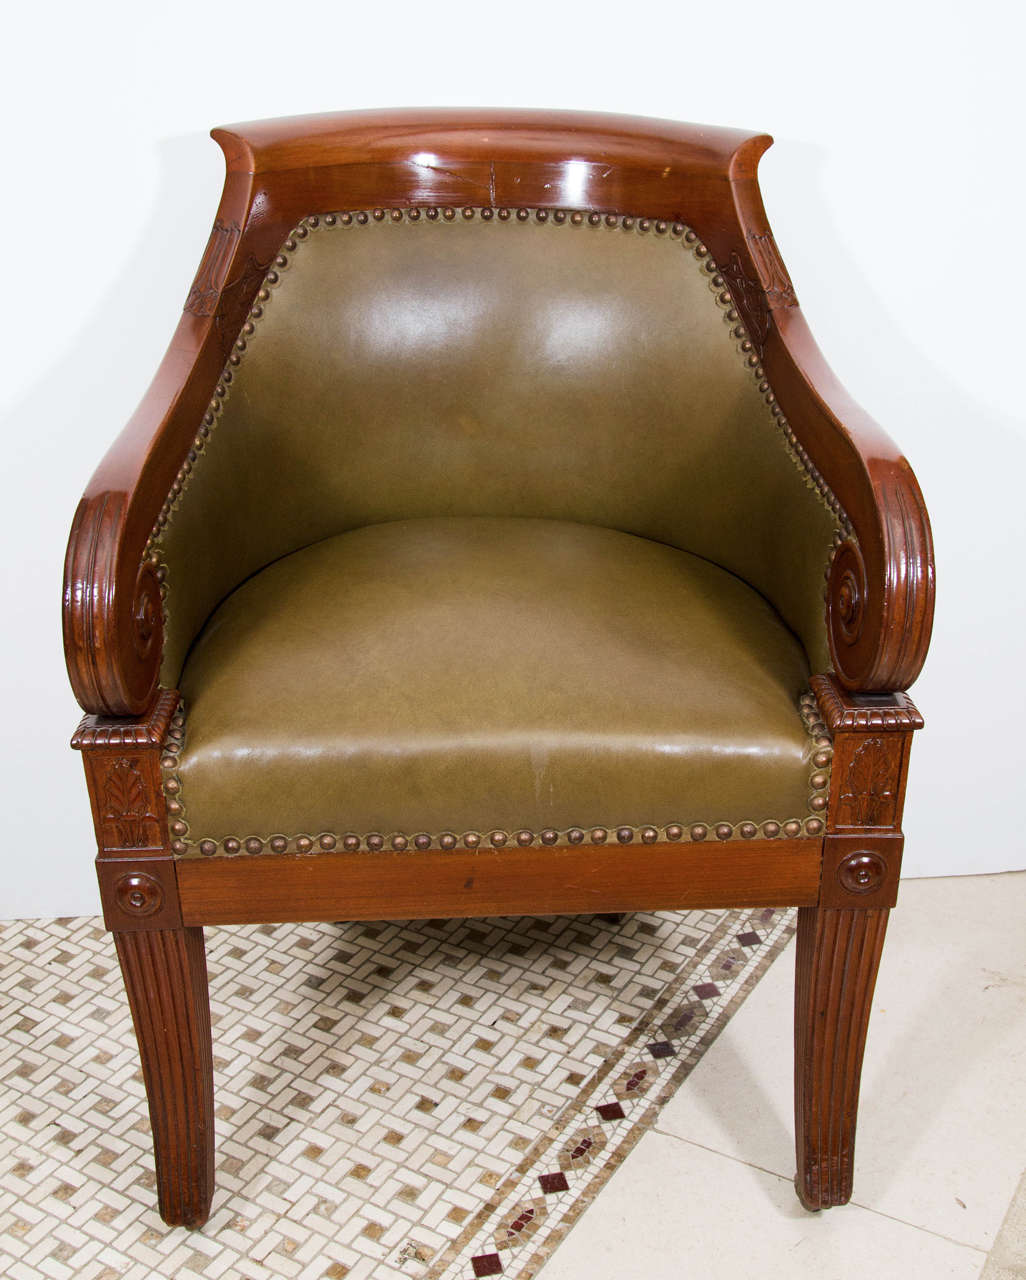 Regency Leather Upholstered Mahogany Tub Chair With Boldly Scrolled Arm  Terminals And Reeded Sabre Legs Ending